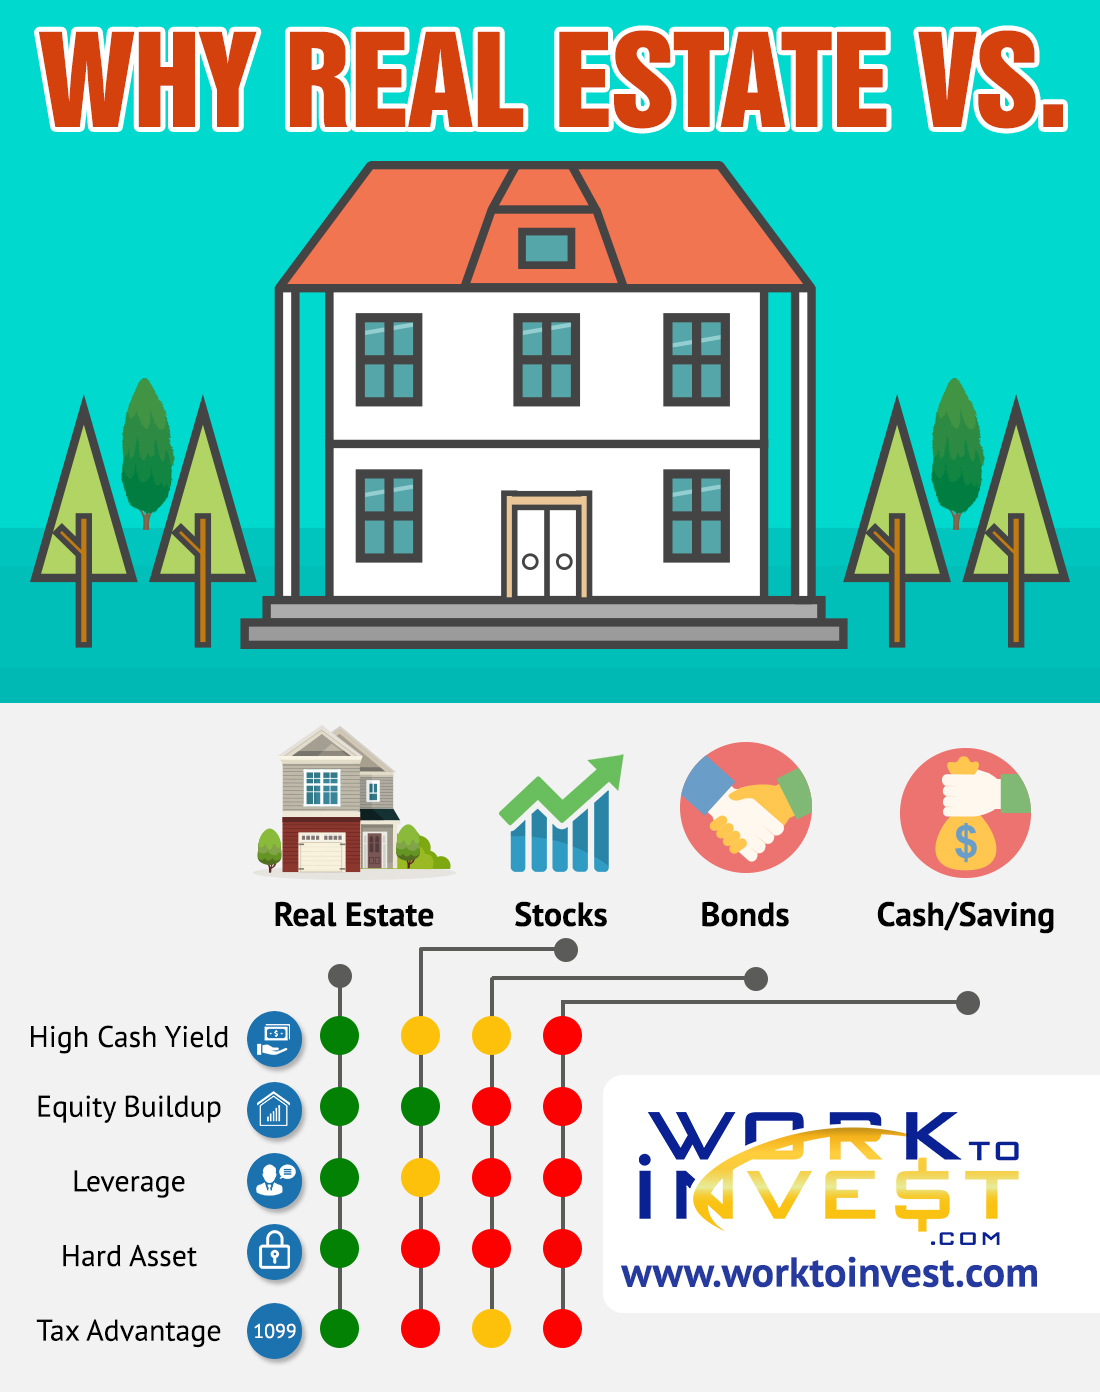 Why Real Estate vs. the others